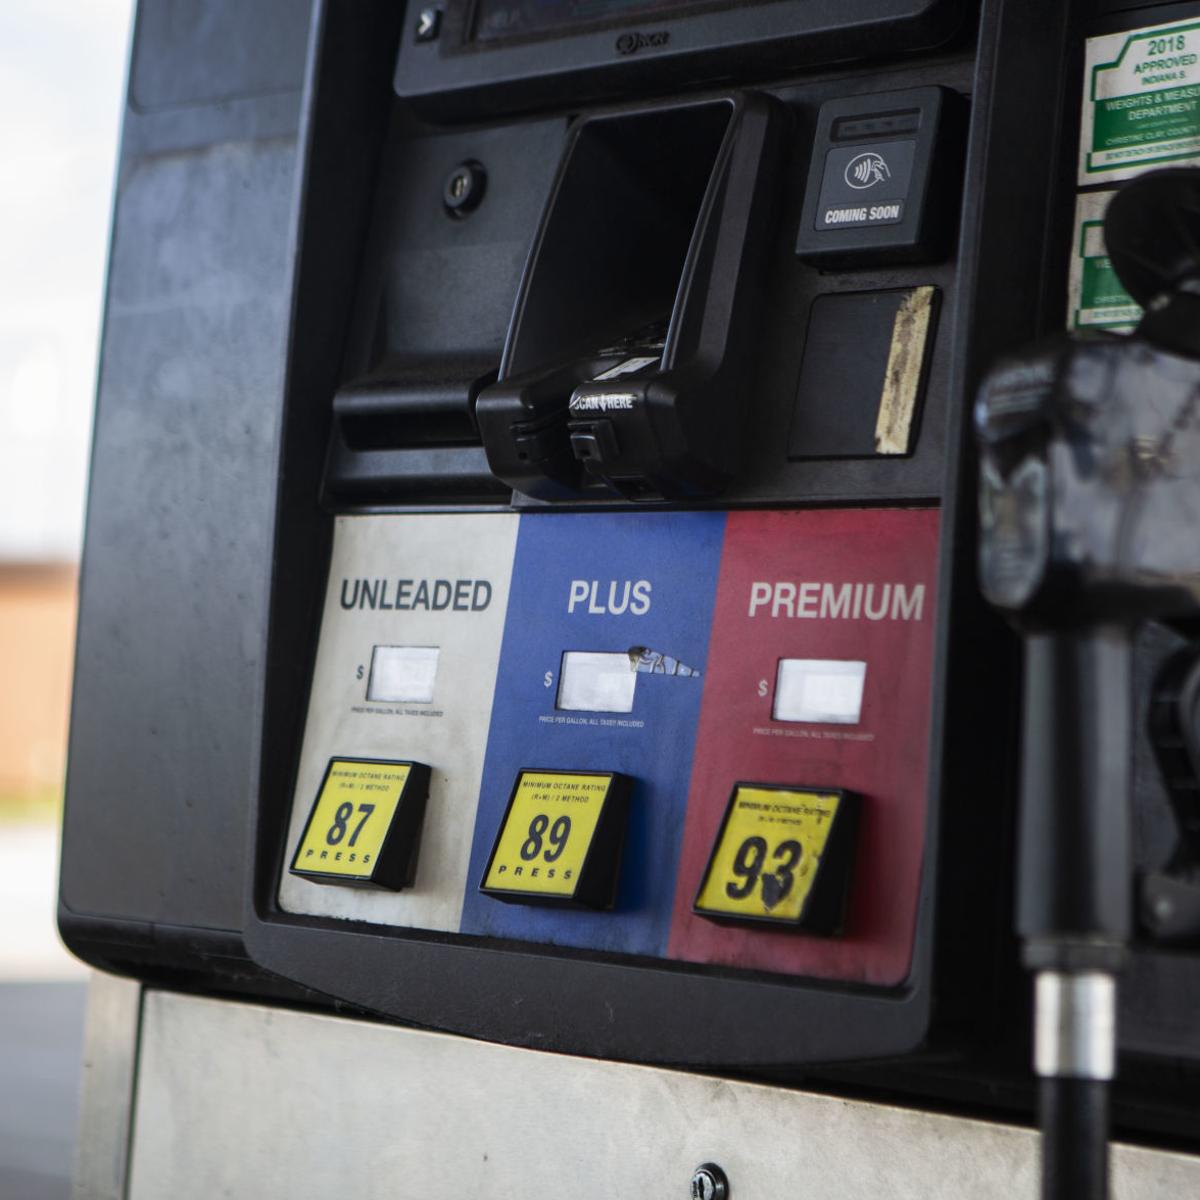 Indiana Gas Tax >> Illinois Cigarette And Gas Tax Hikes Could Drive More Business To